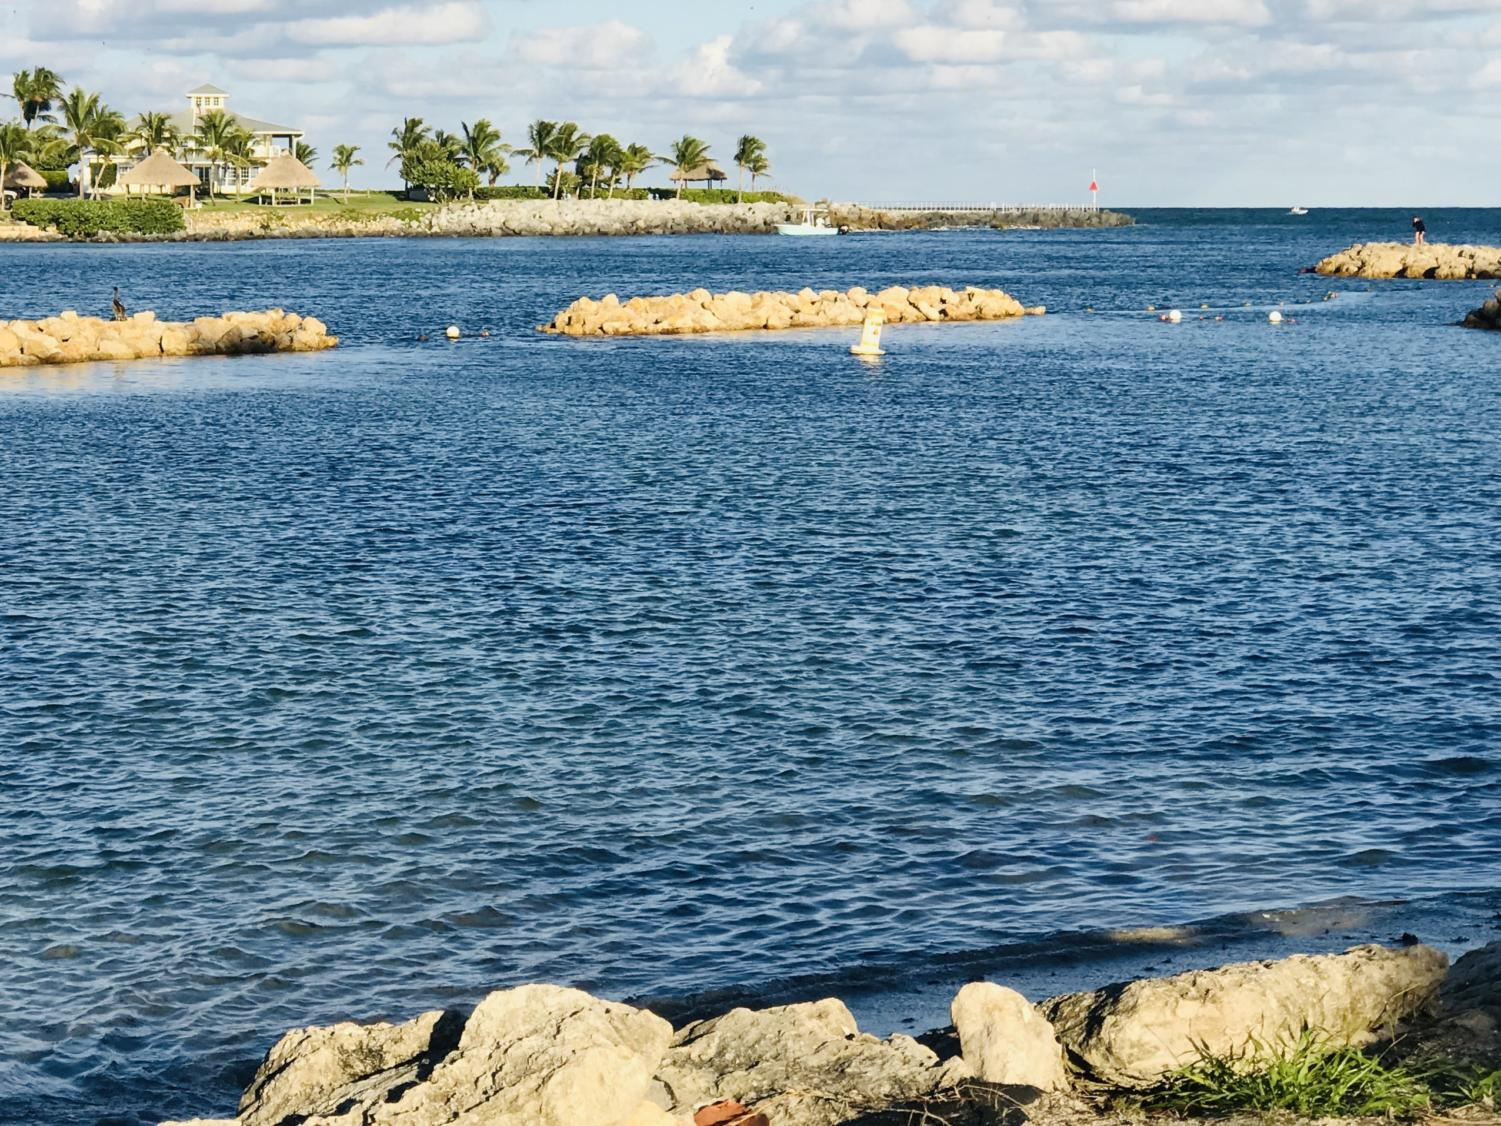 Dubois Park along the Jupiter Inlet is a fun and relaxing place to visit over Spring Break.